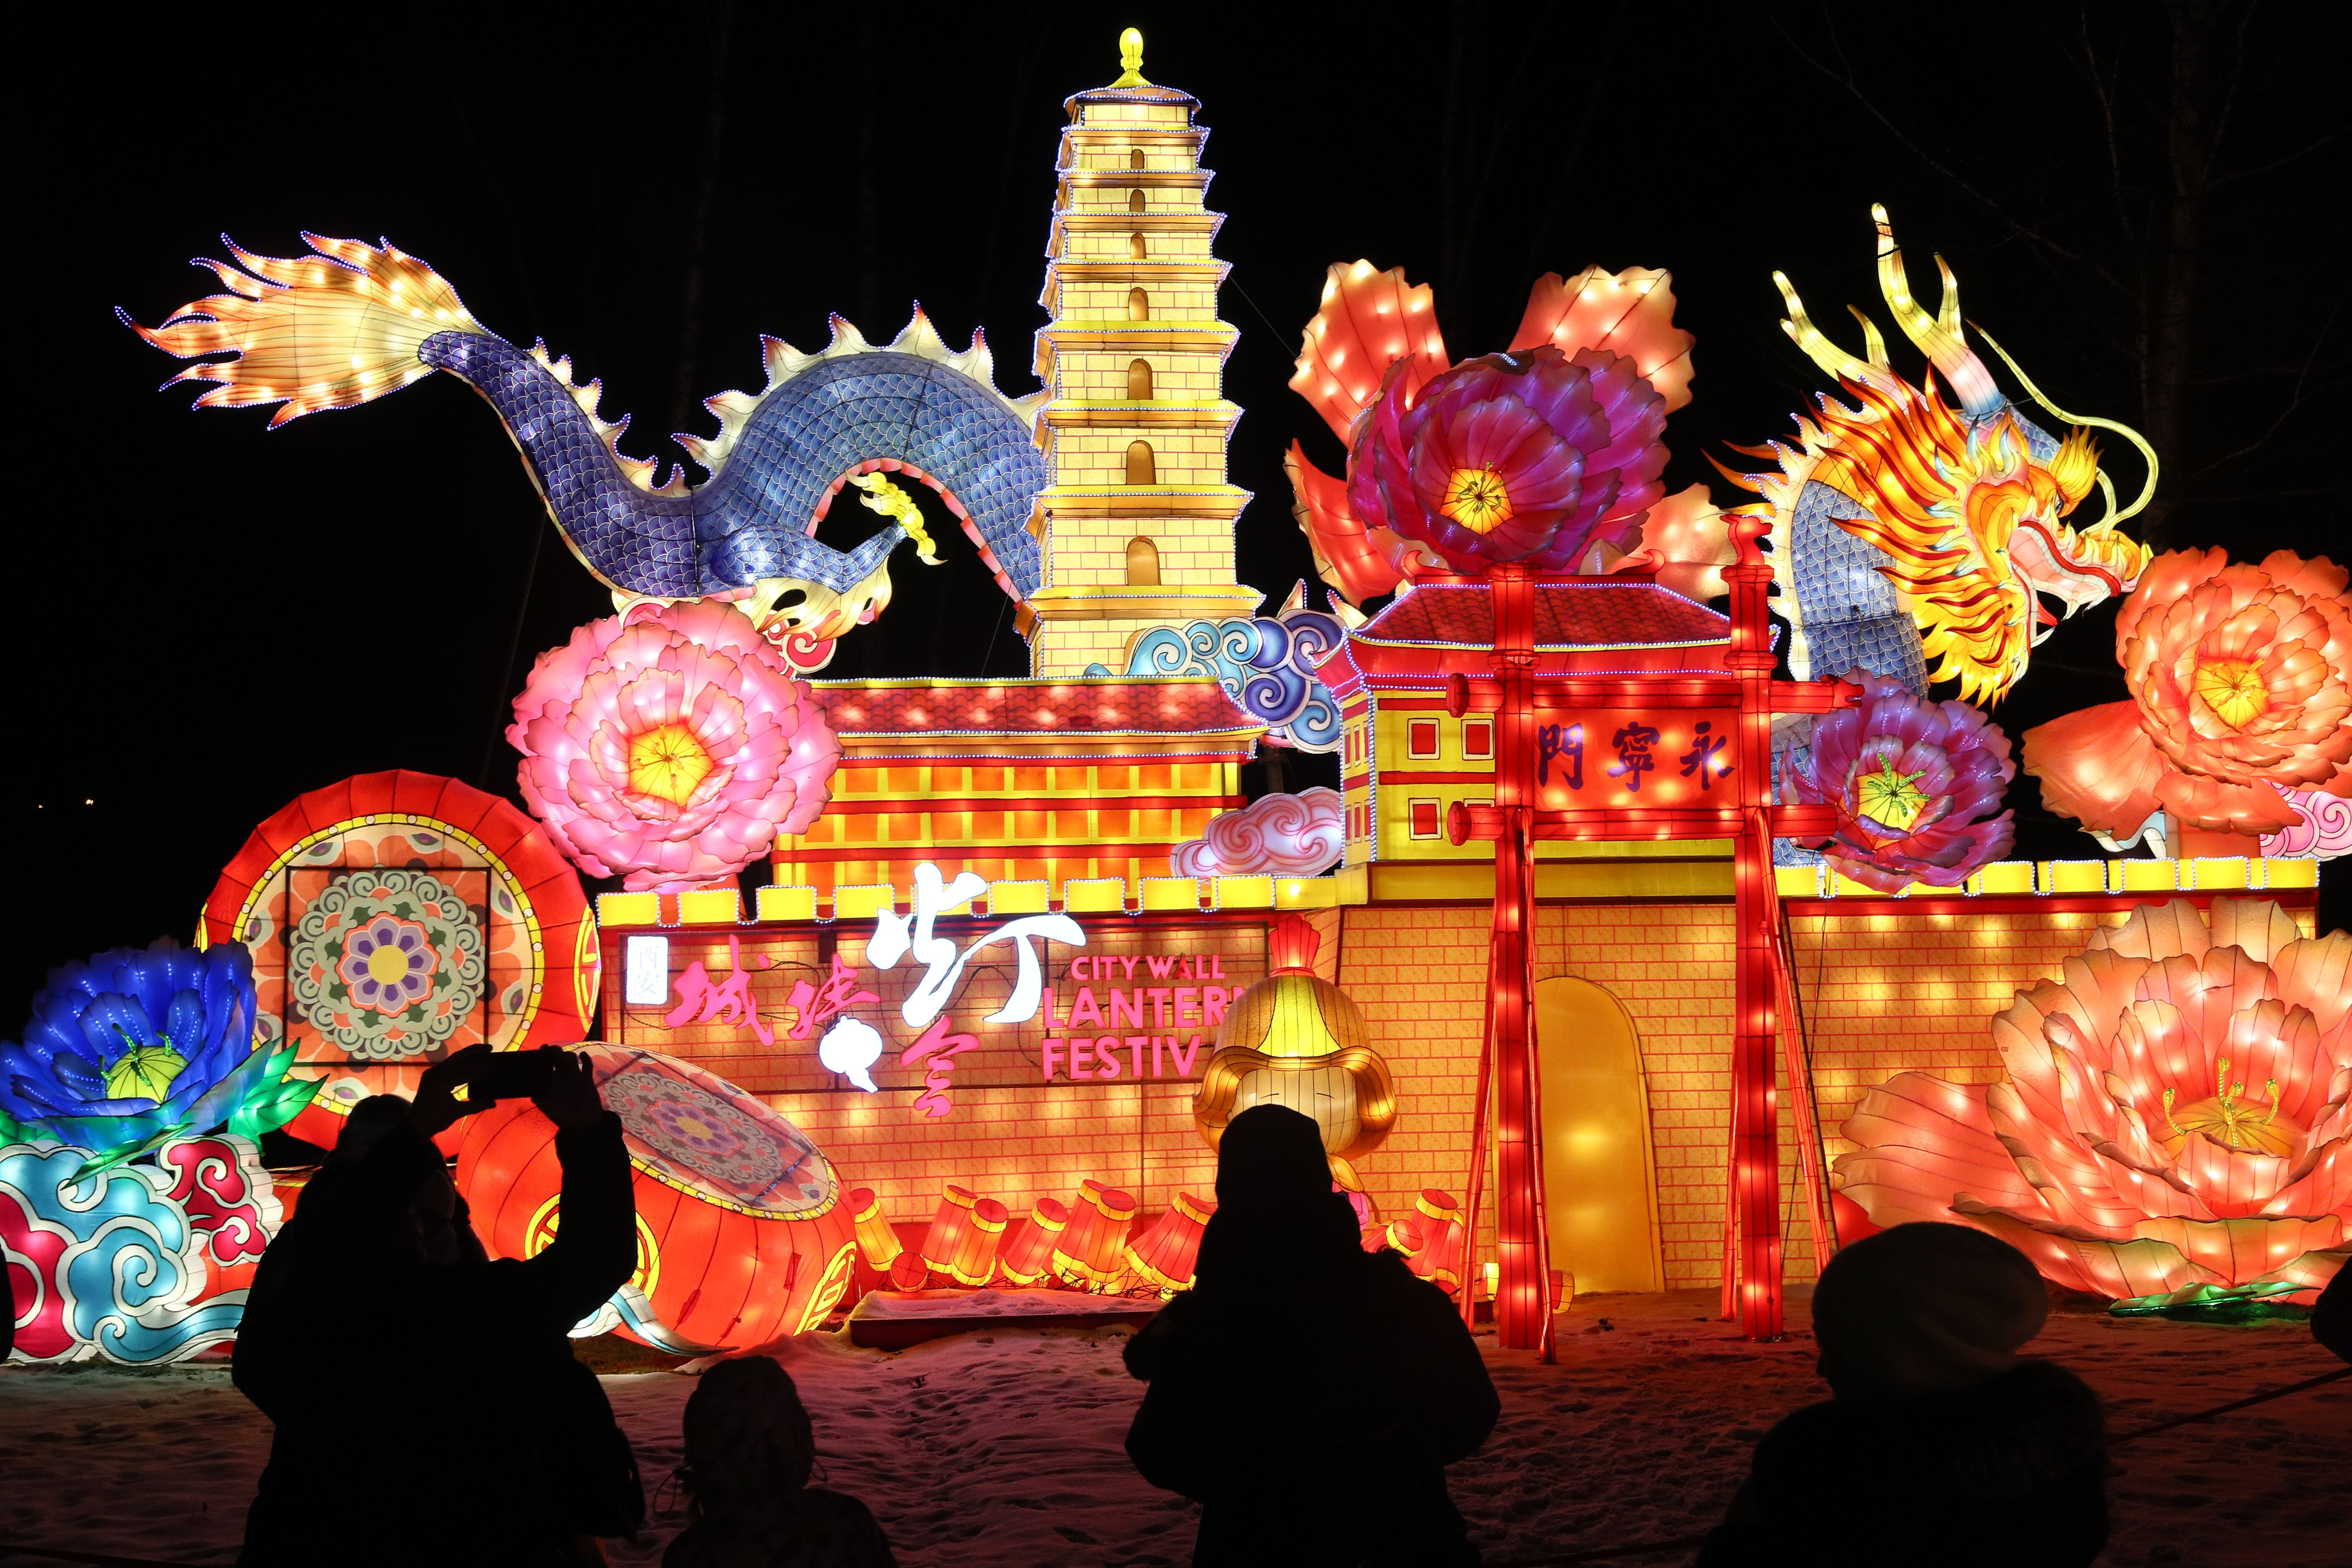 In this image, a gigantic lit-up dragon and wall is seen